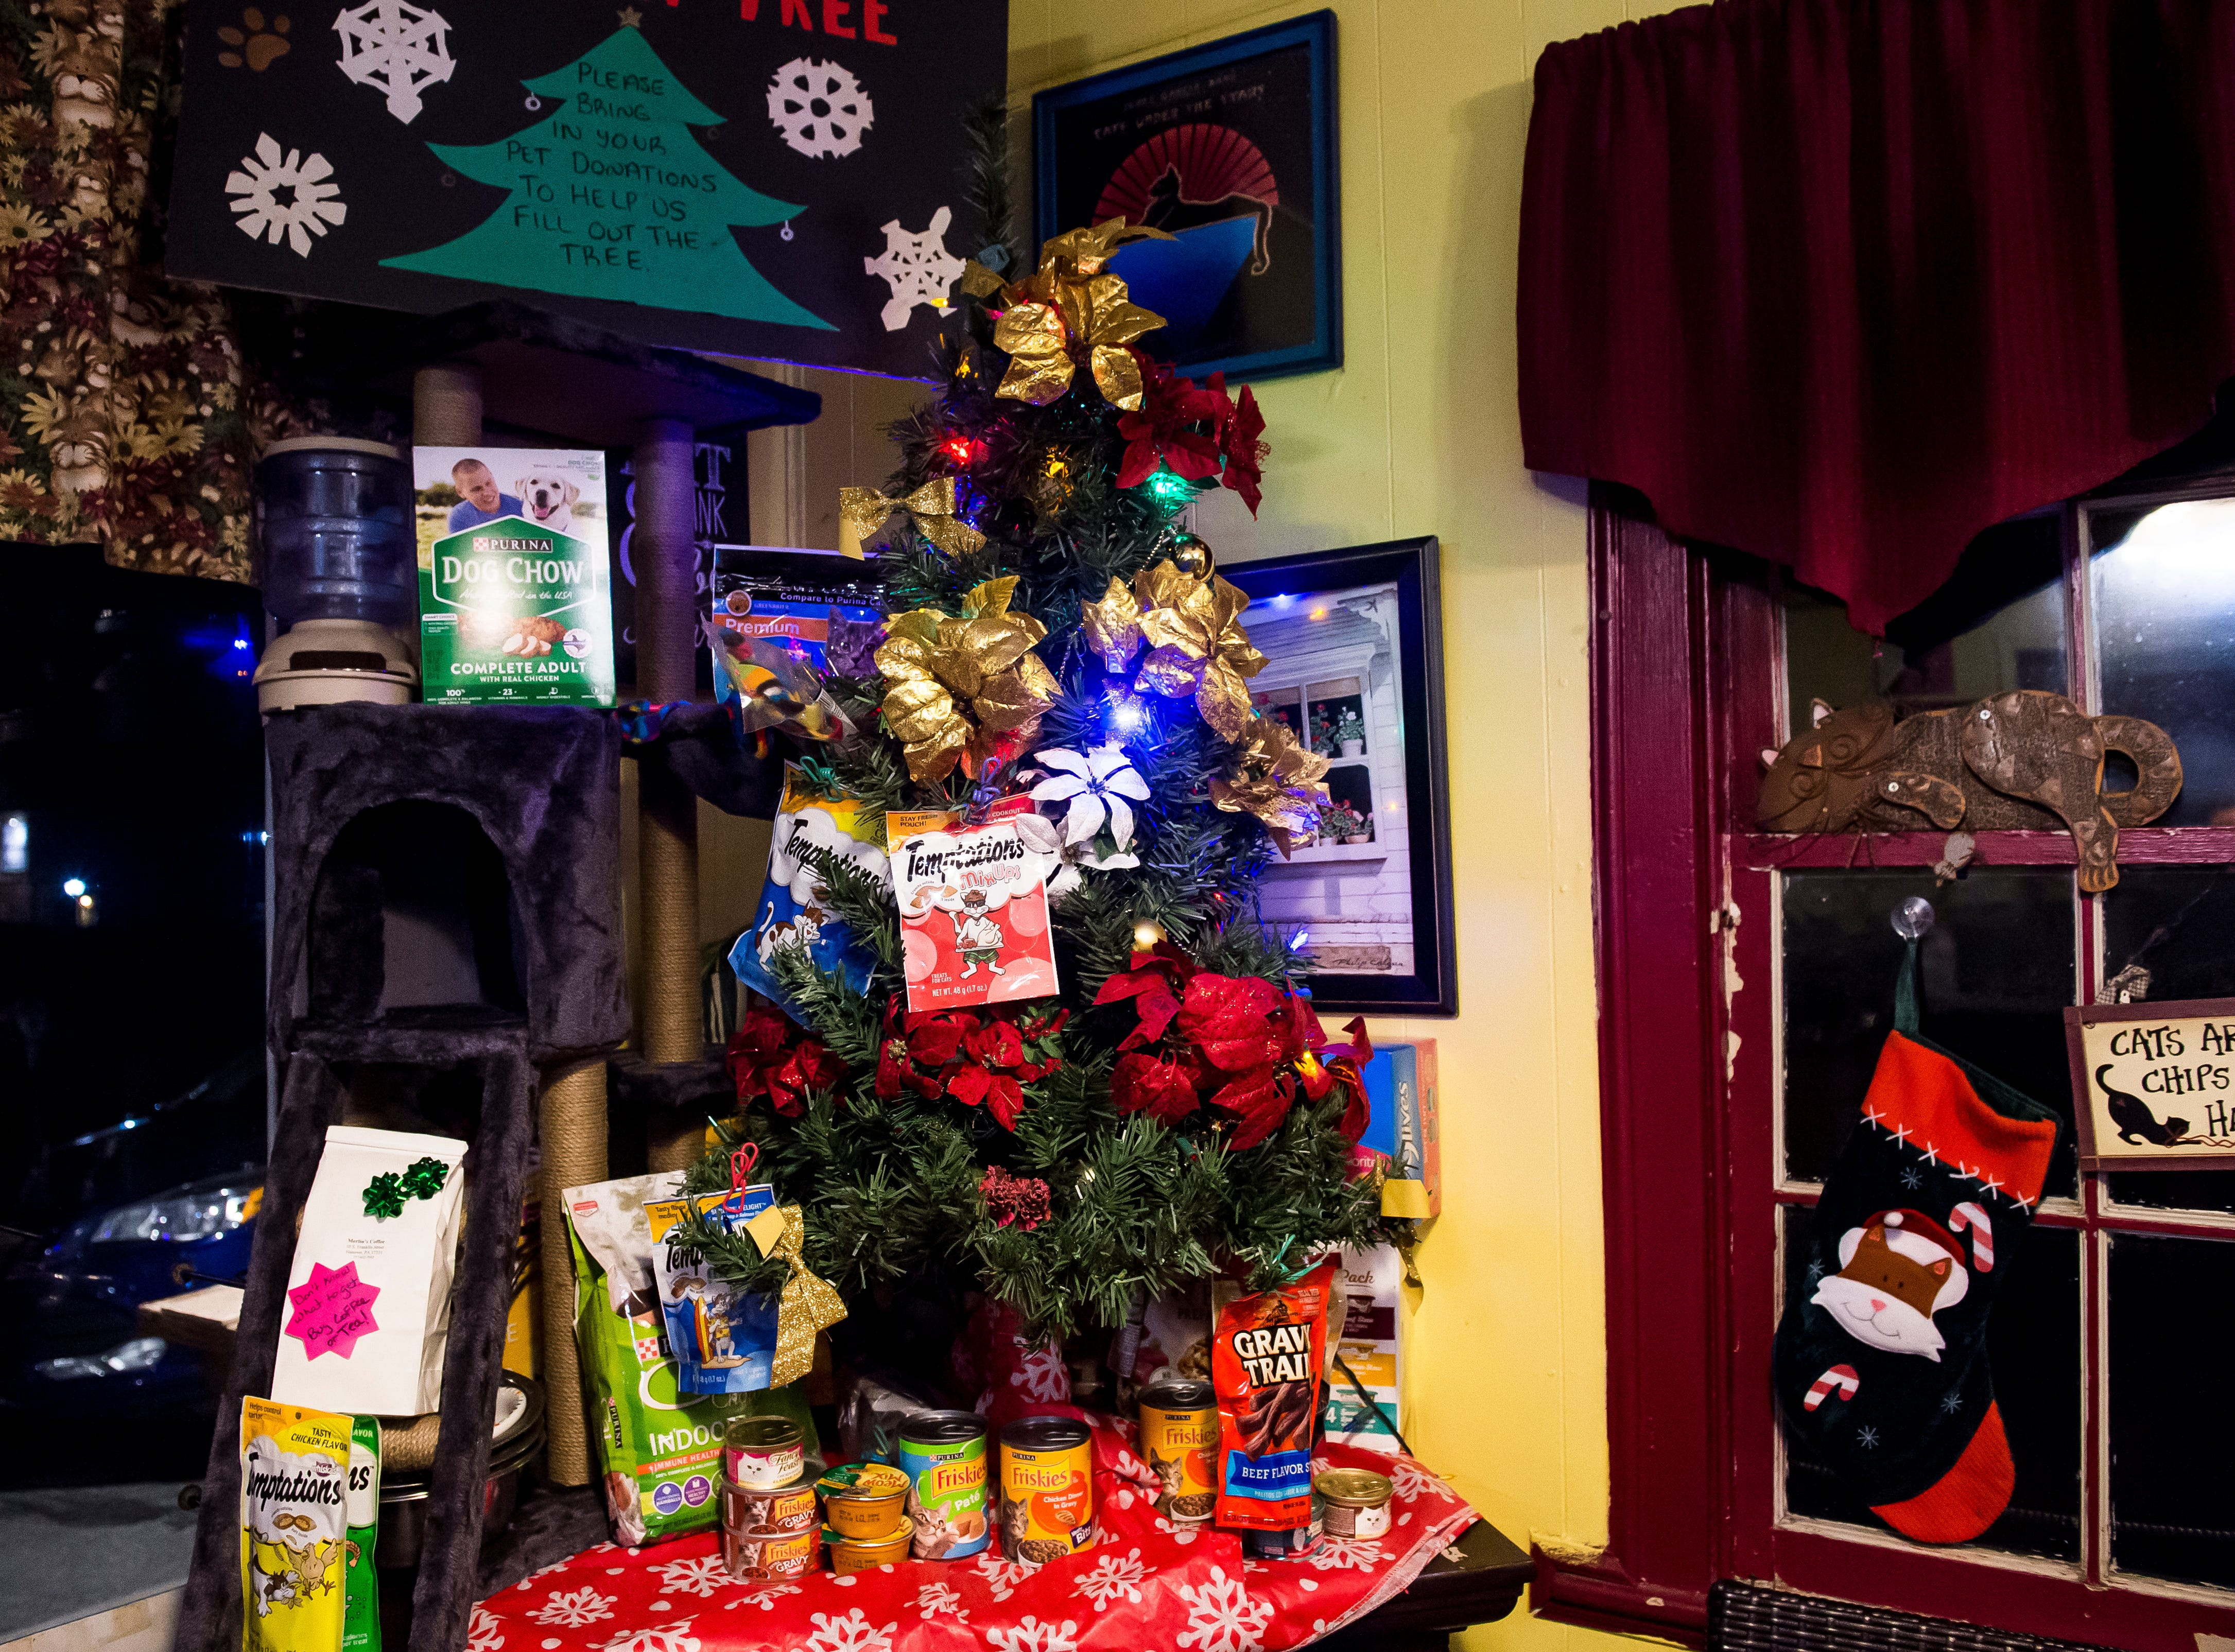 Merlin's Coffee located at 10 South Franklin St. Visit mainstreethanover.org for details about Christmas Tree Wars.